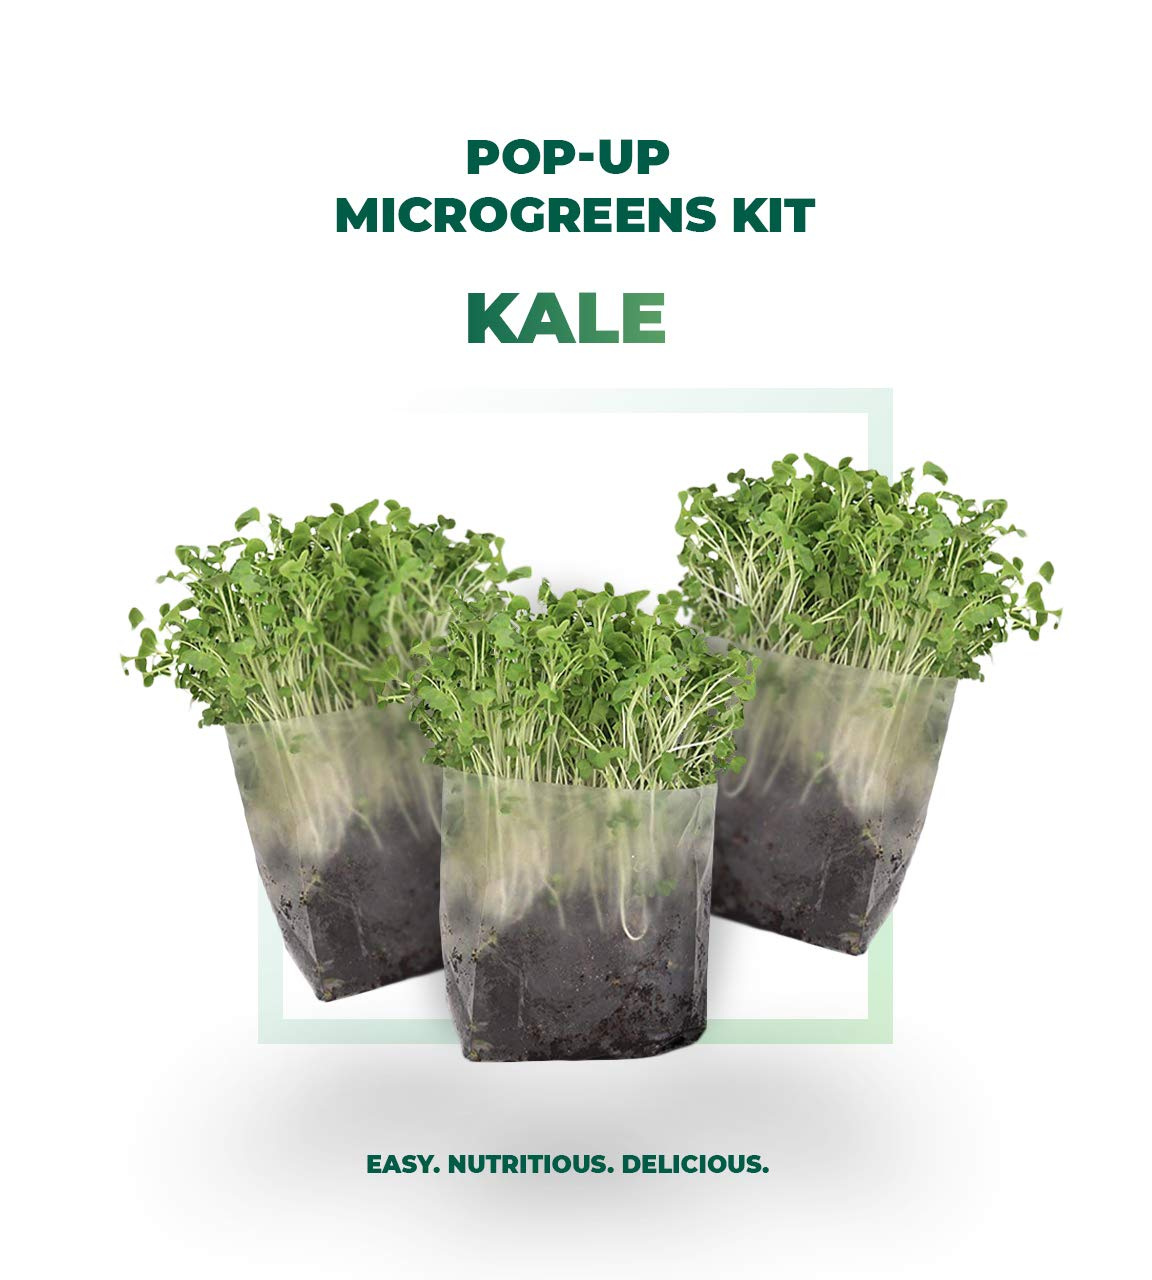 Pop Up Microgreens Kit (Kale) – Just Add Water and Seed. Perfect Size, a Quick, Smart, Nutritious Meal. Includes Fiber Soil in a Bag, Kale Seed. Super Health Benefits, Easy Grow/Delicious.